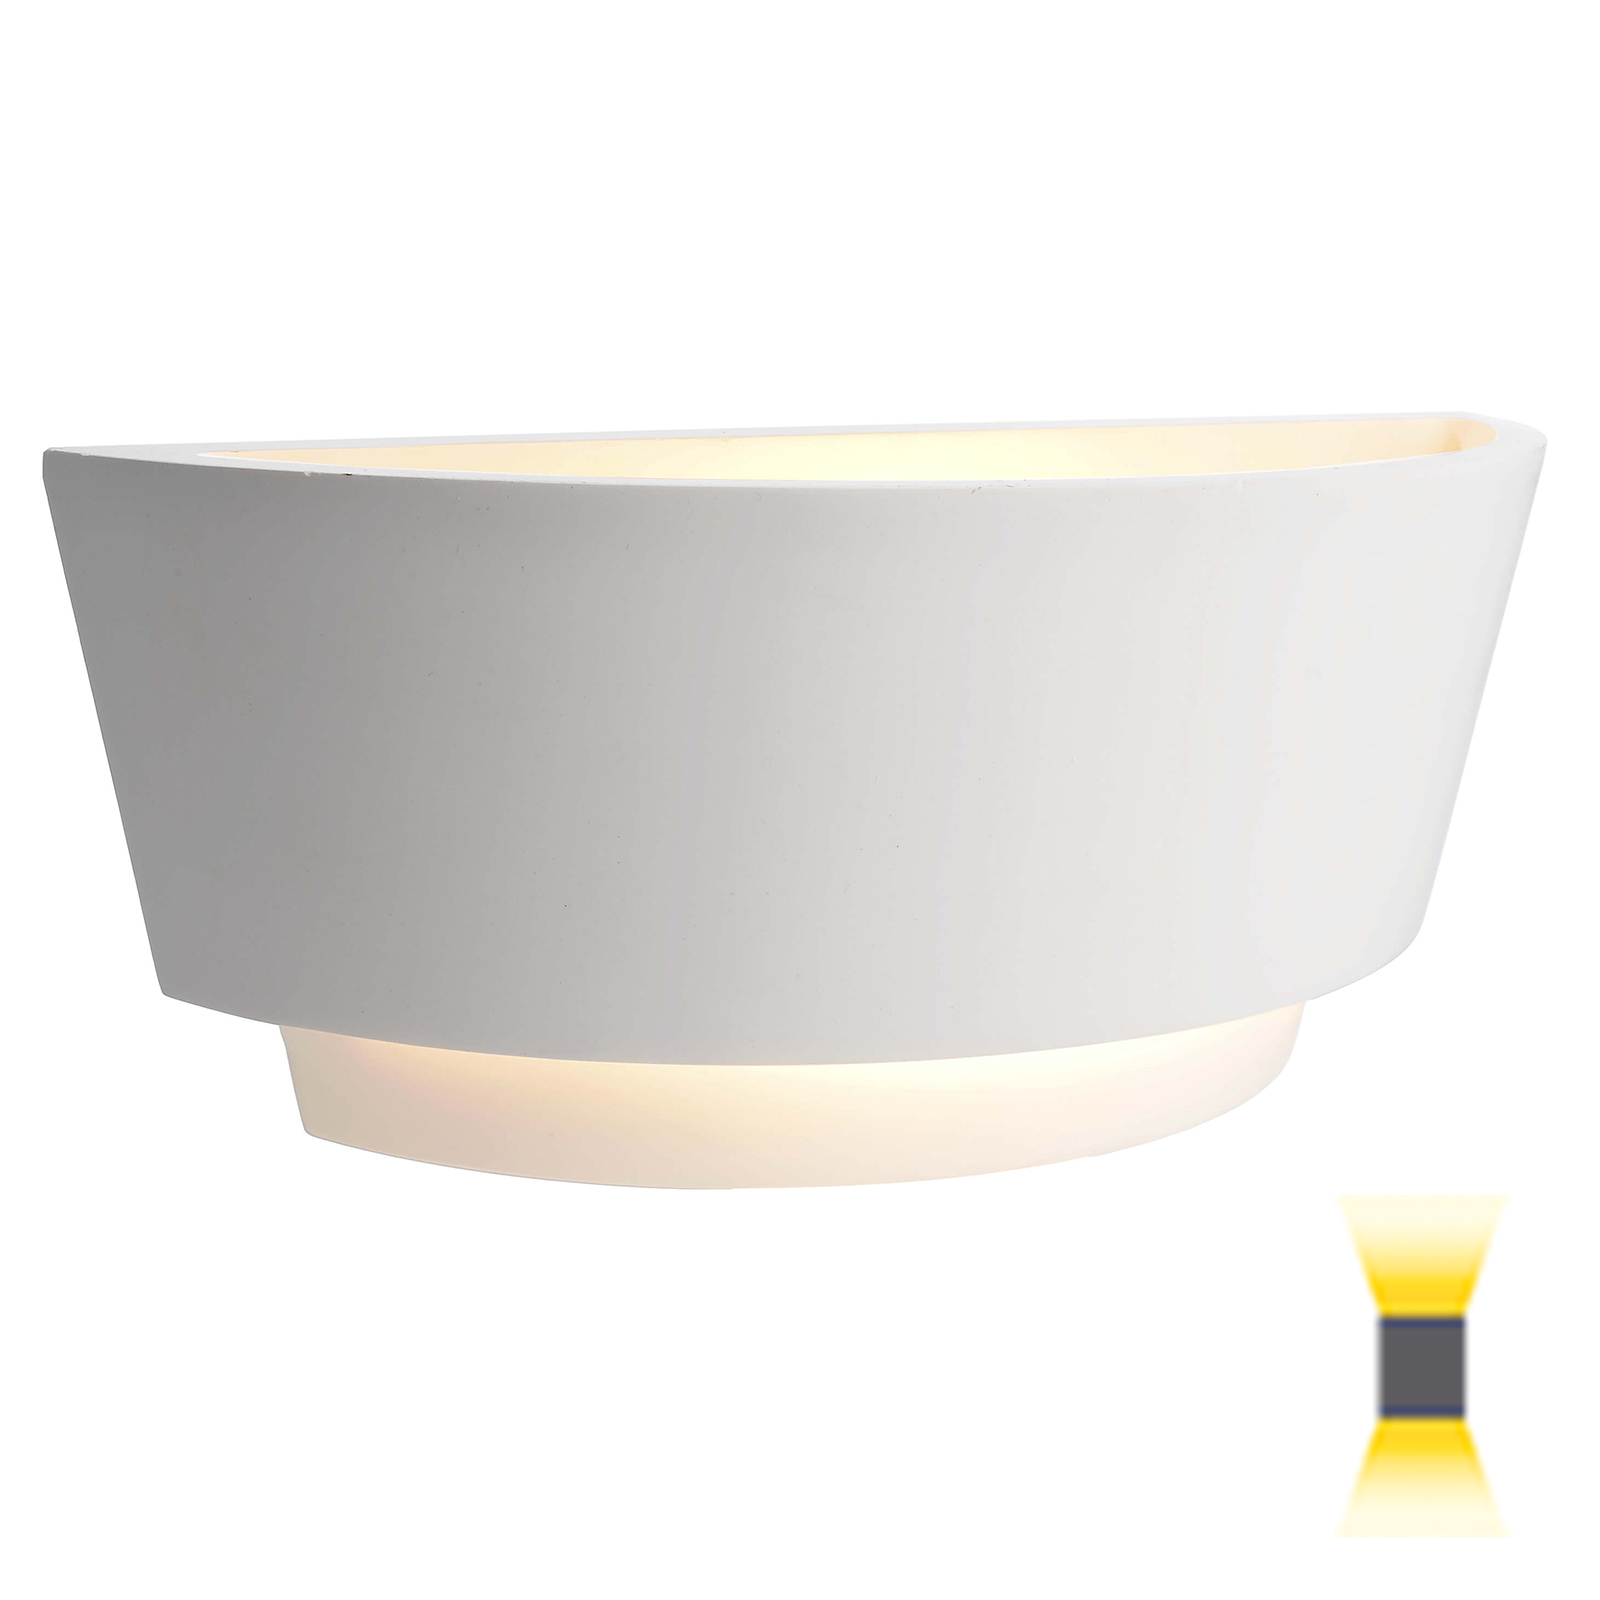 Plaster wall light LED lamp E14 6W double emission corridor light 230V